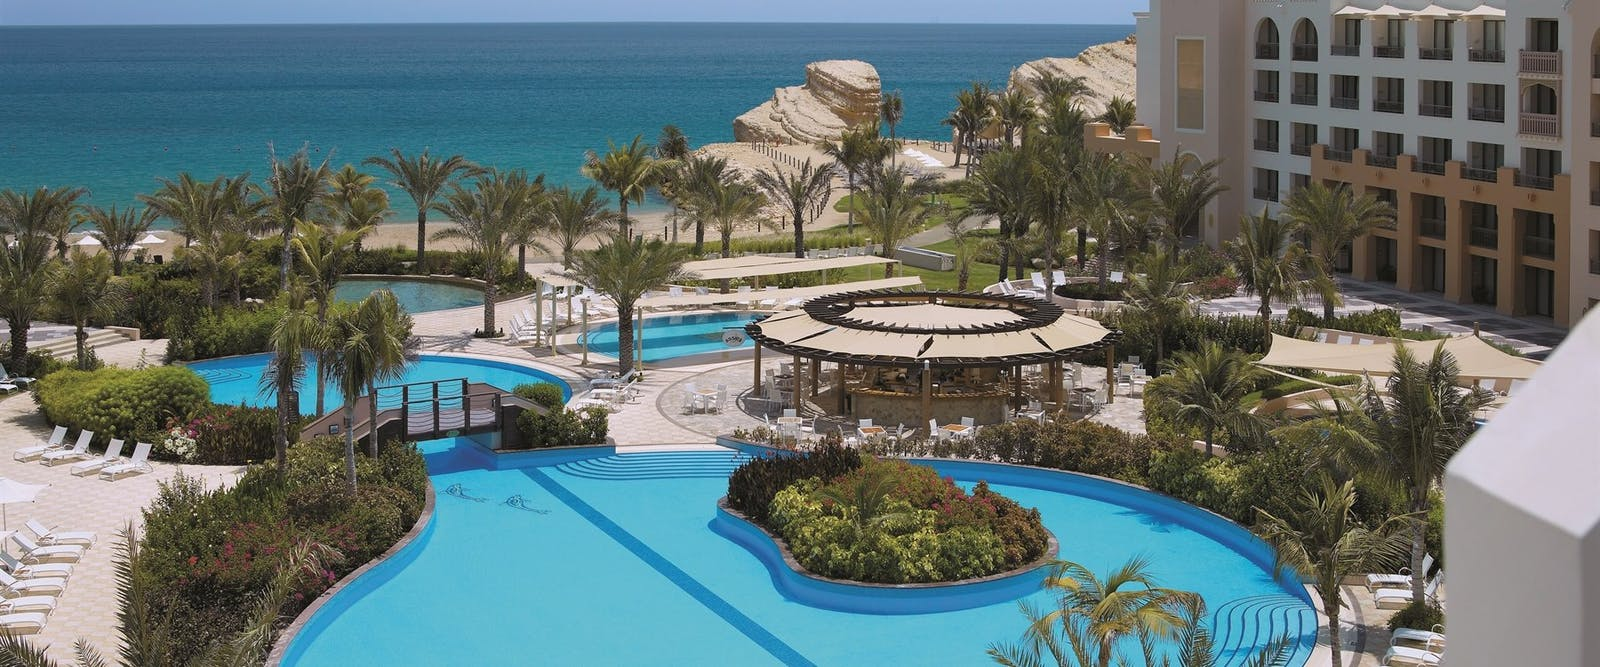 Swimming pool at Shangri La Barr Al Jissah Resort & Spa, Oman - Al Waha